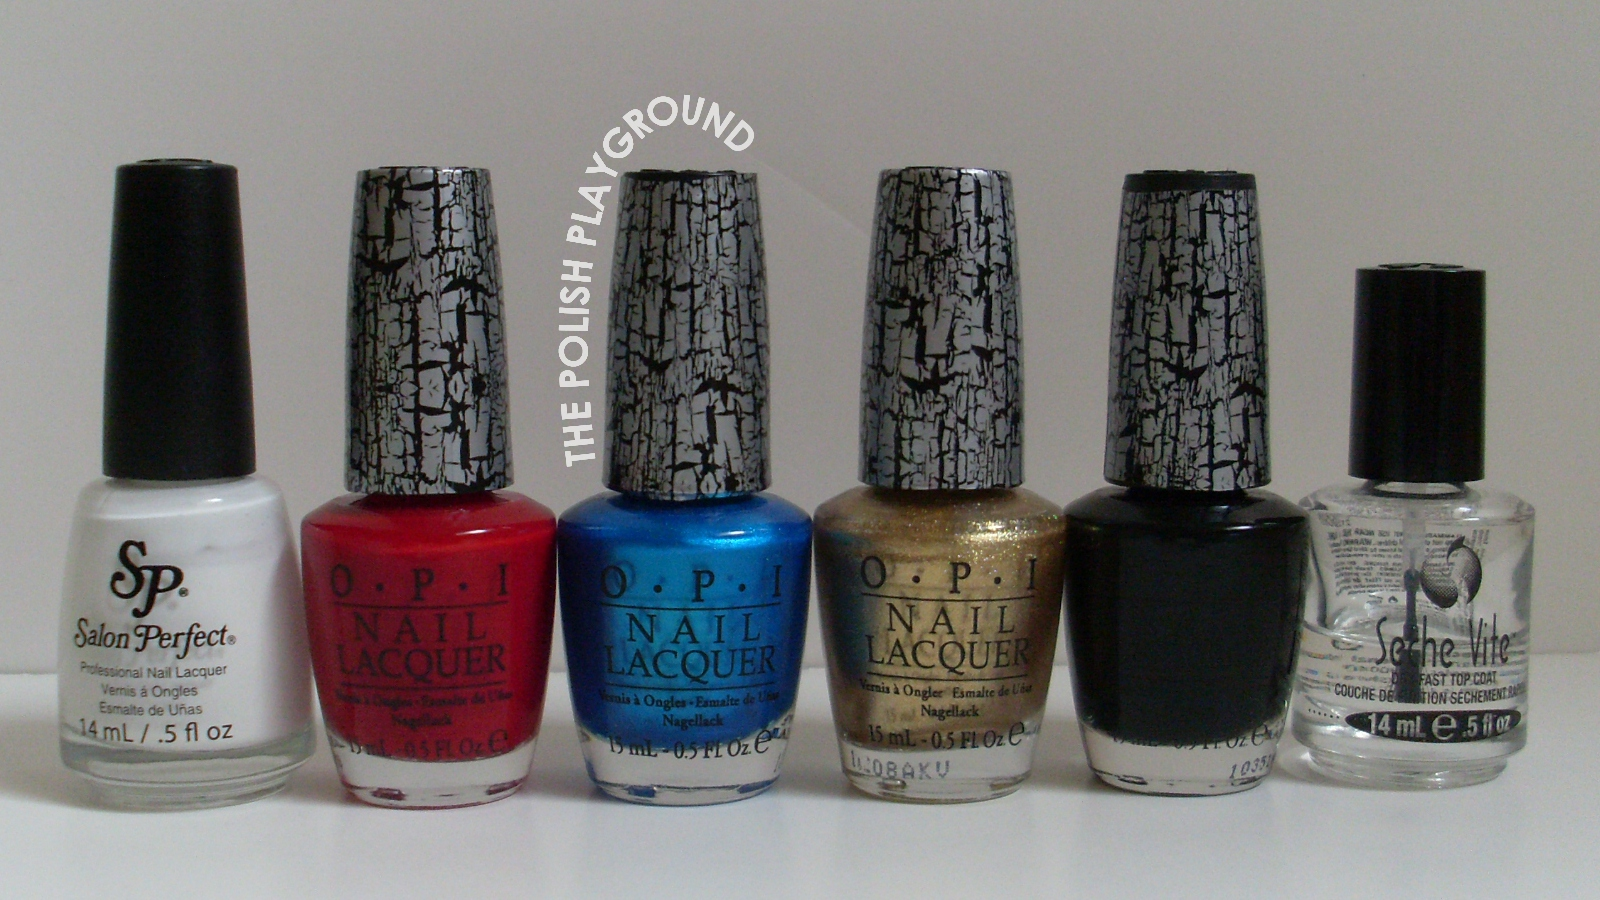 Salon Perfect, OPI, Seche Vite